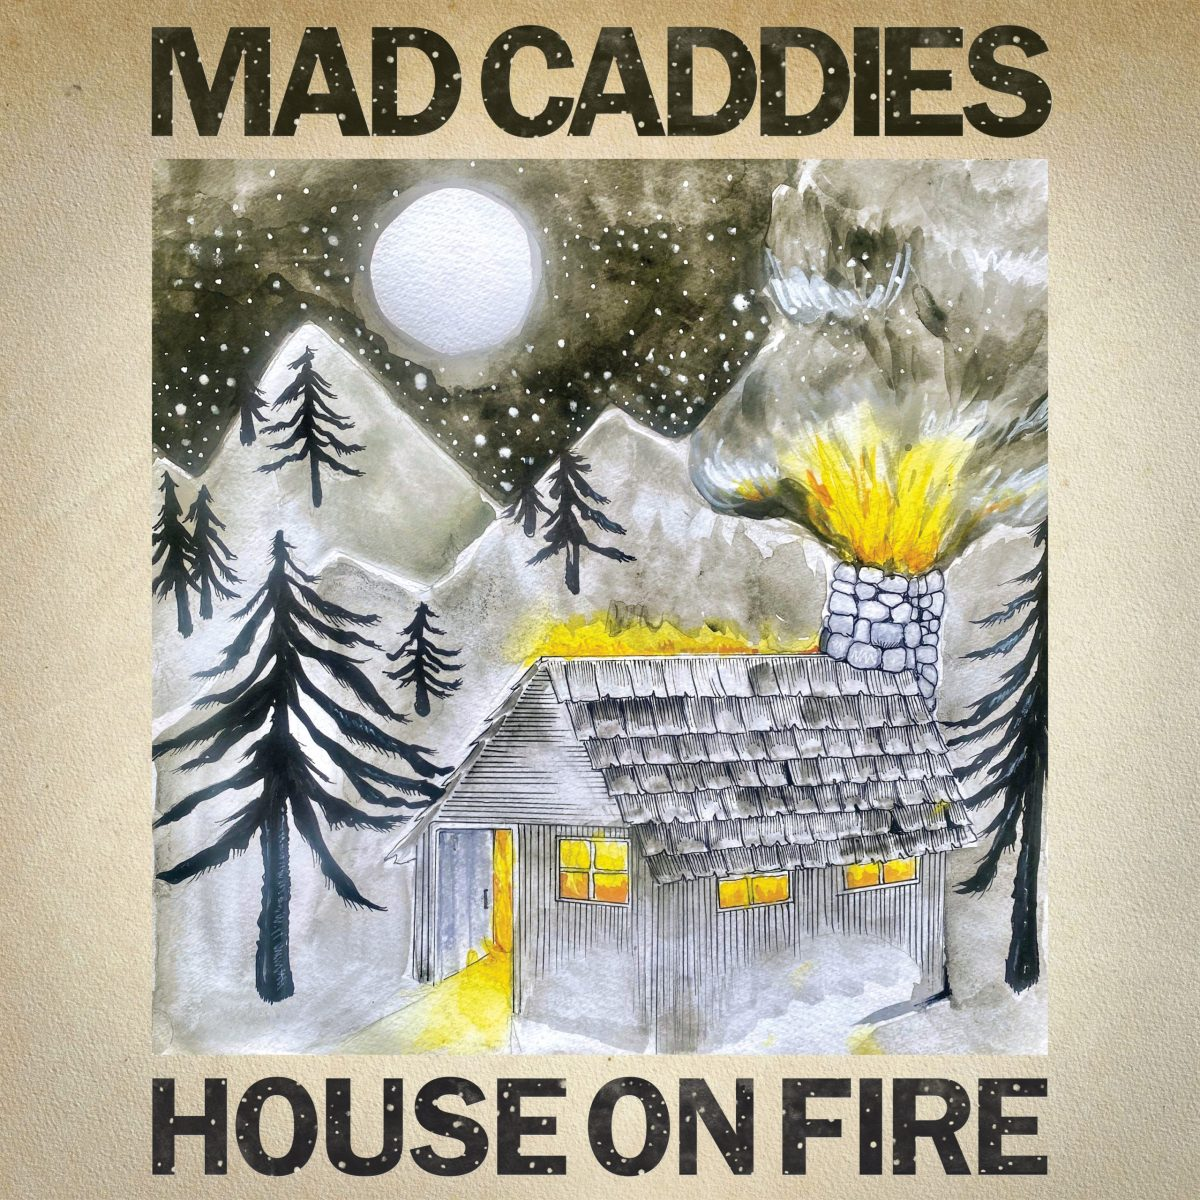 mad-caddies-house-on-fire-ep-review